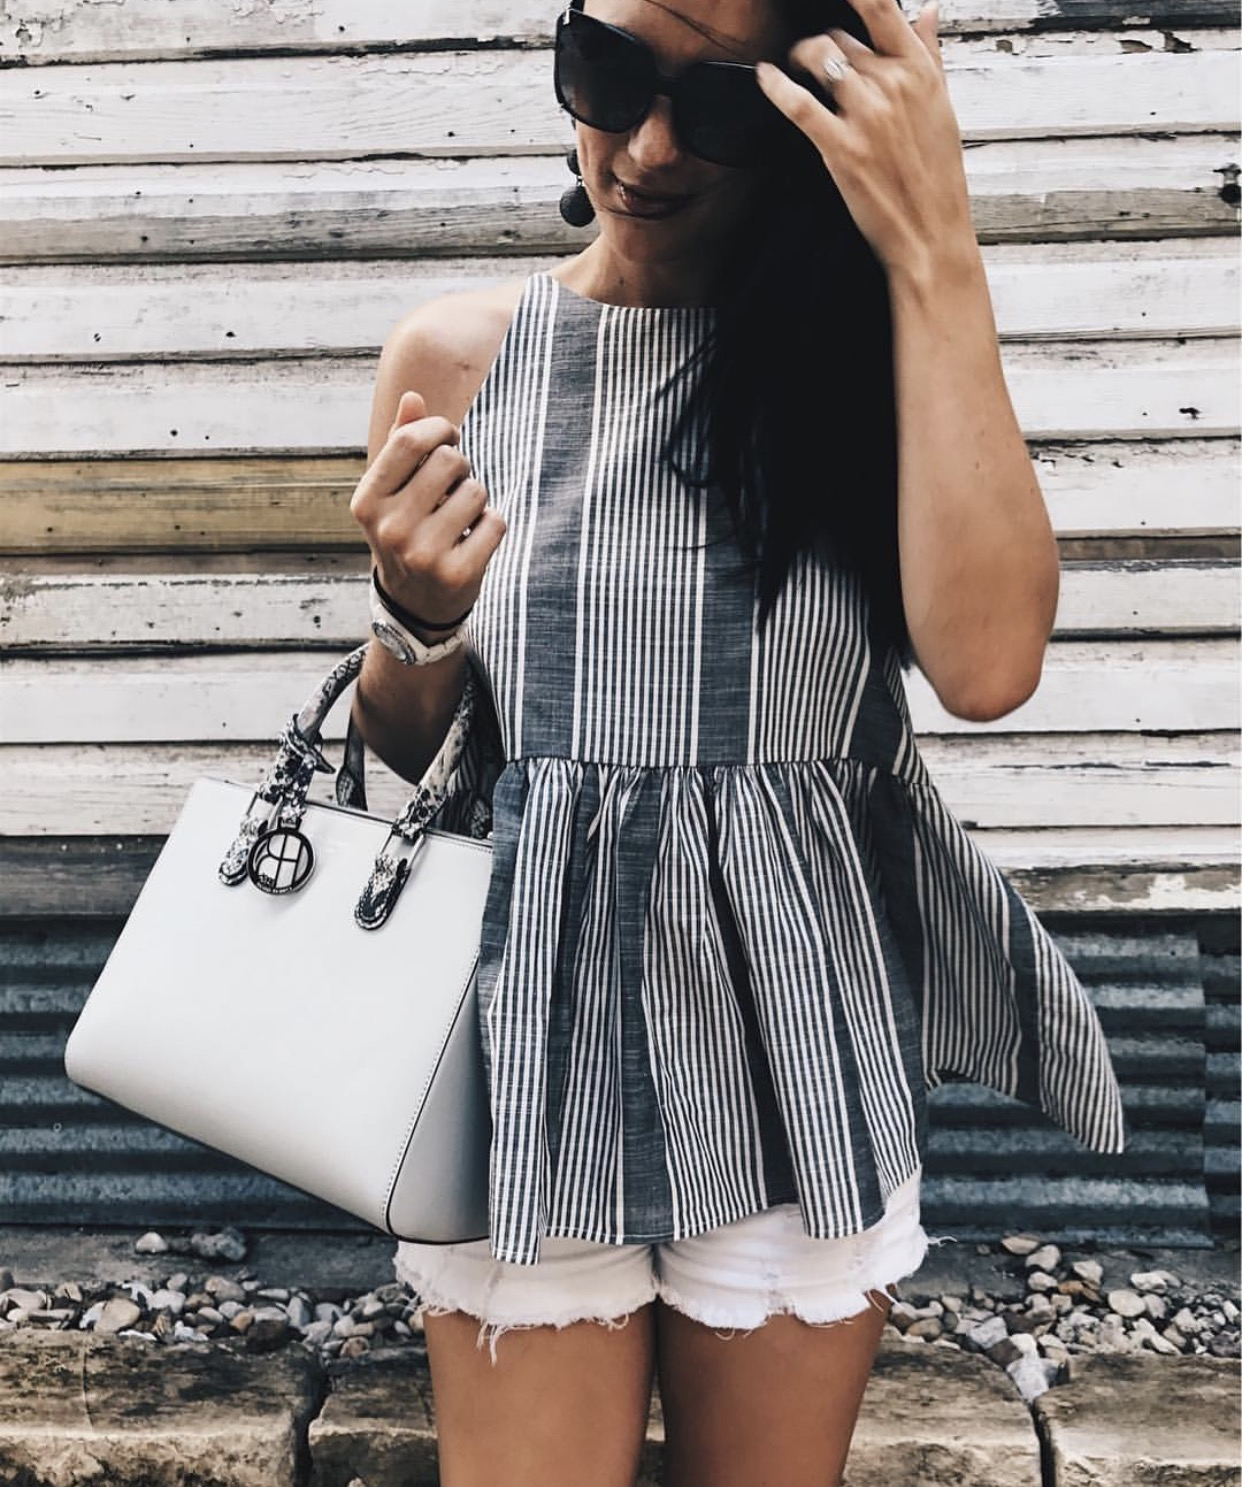 DTKAustin shares her latest Instagram fashion posts from June. Sales, great deals and fabulous looks await. Click for more information and photos.